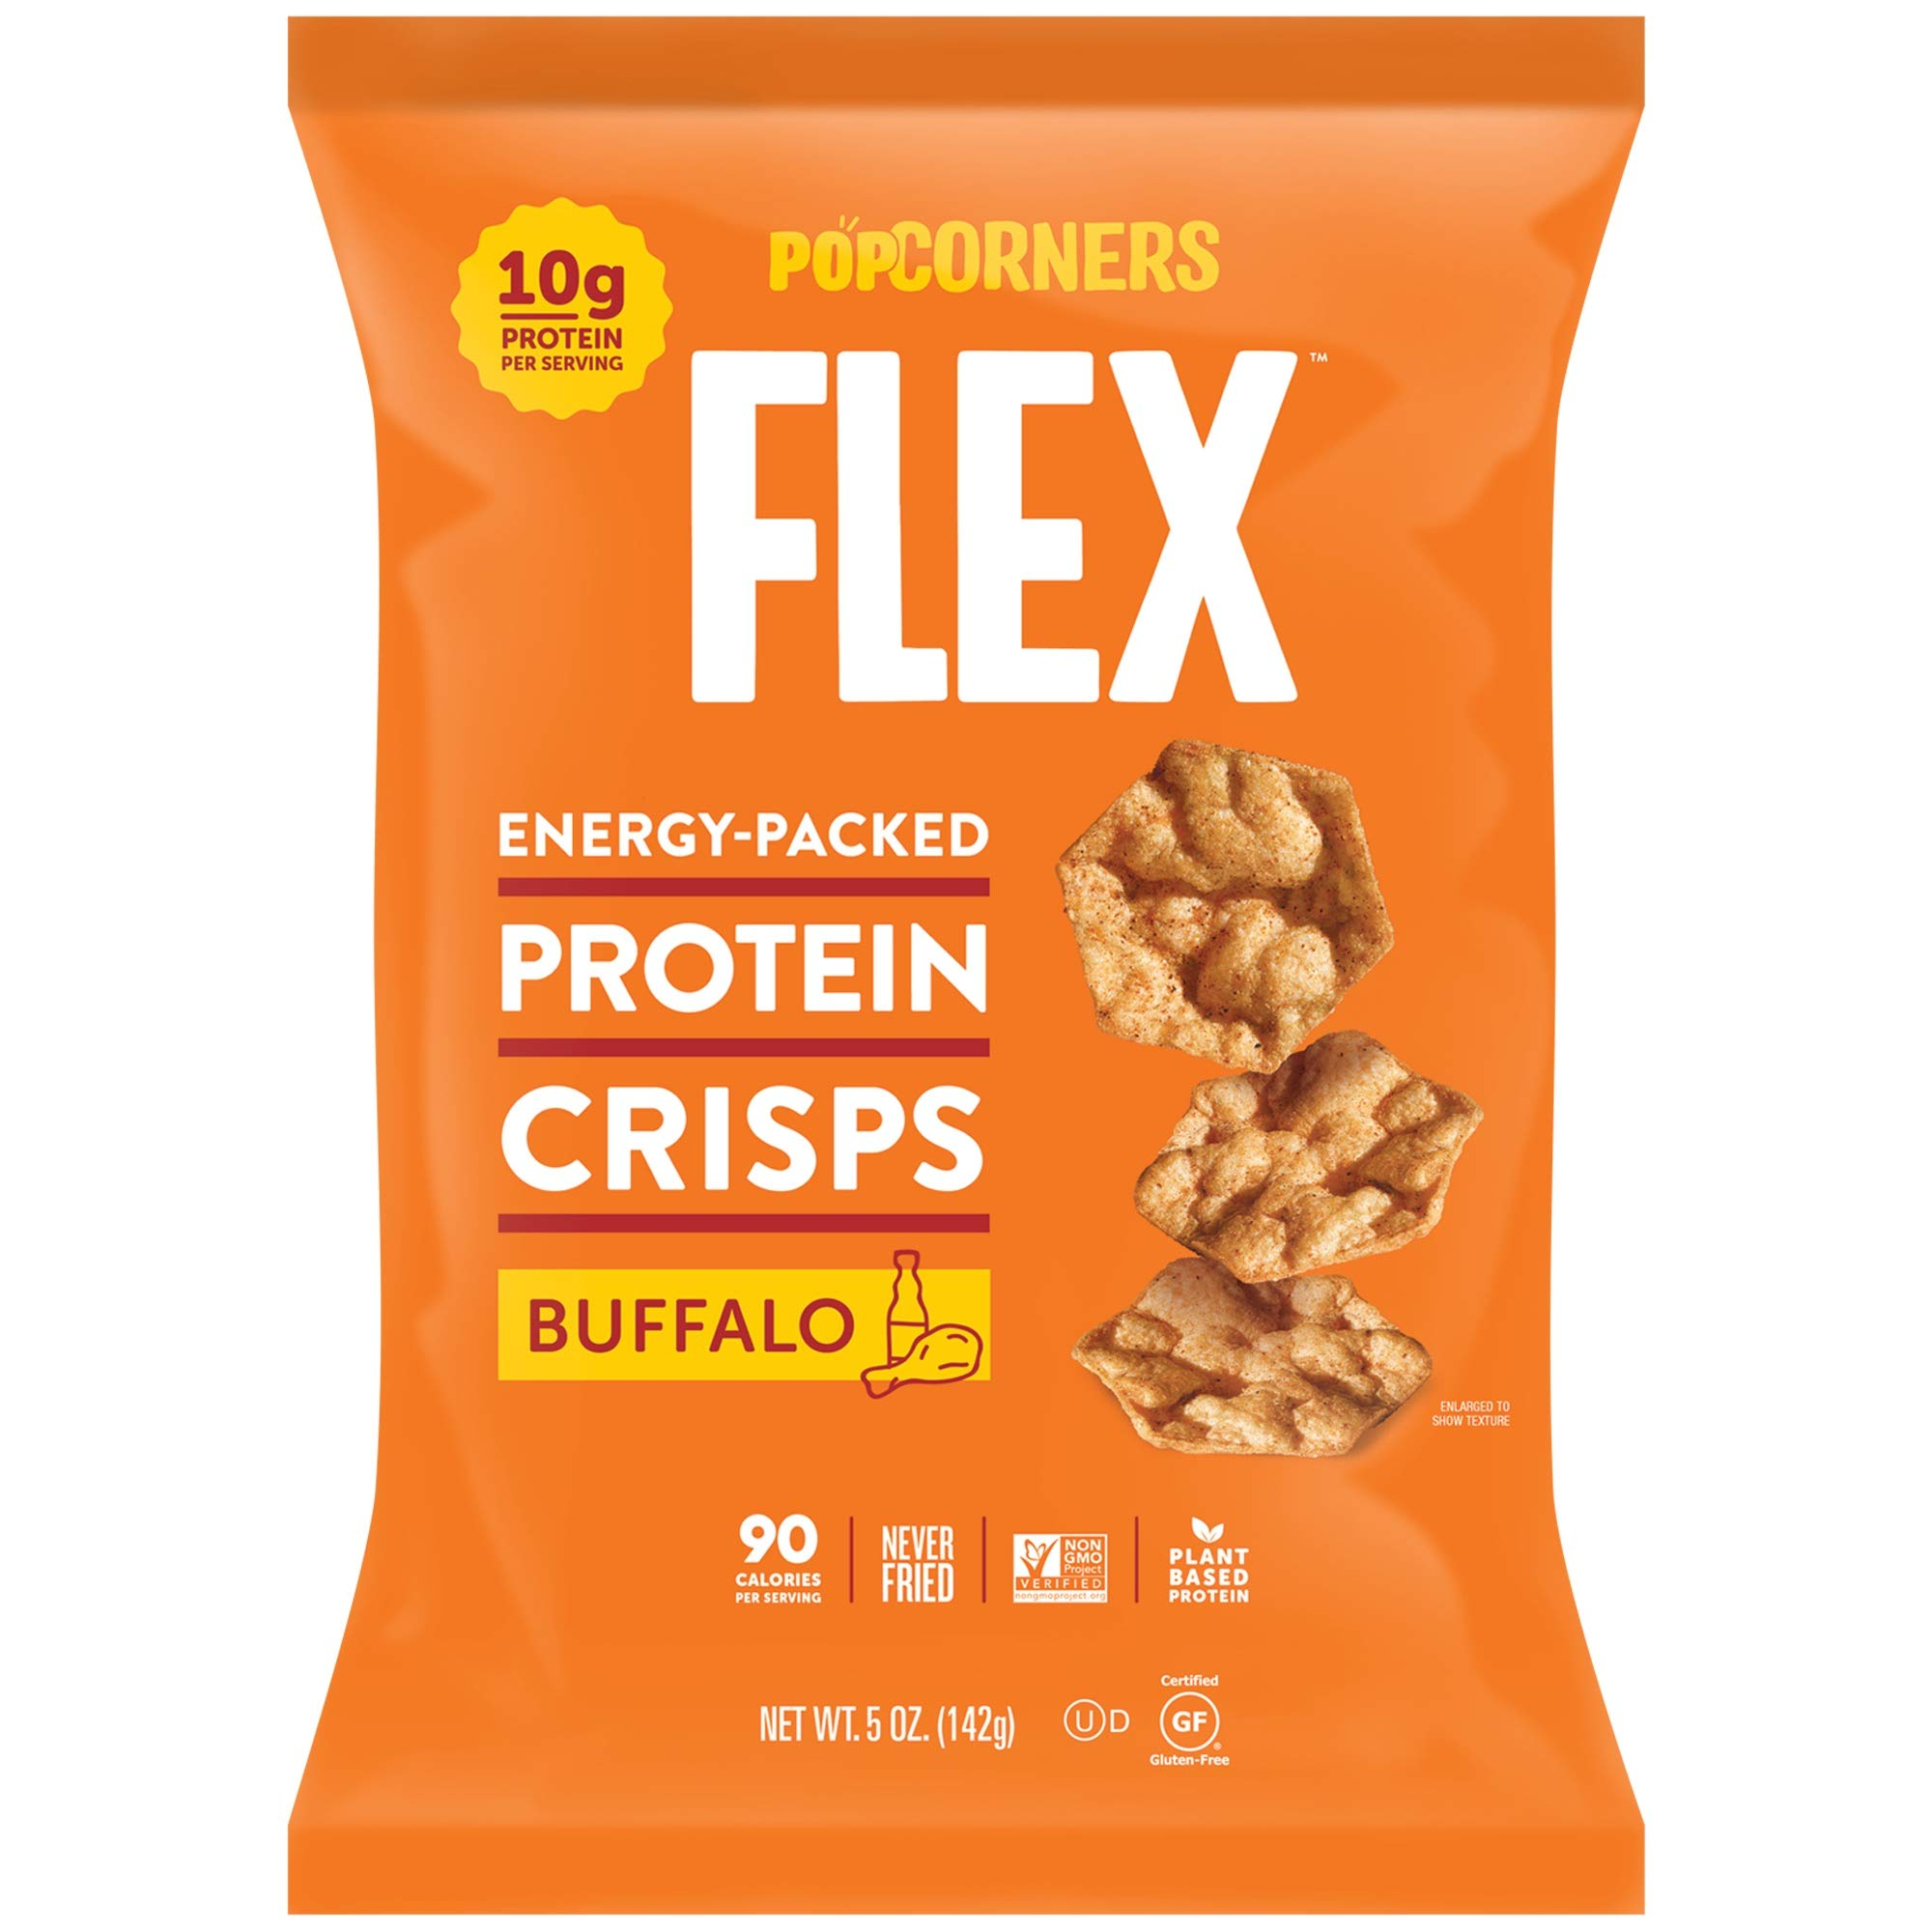 PopCorners Flex Buffalo Protein Crisps | Plant-Based Protein, Gluten Free Snacks| (12-Pack, 5 oz Snack Bags) by Flex